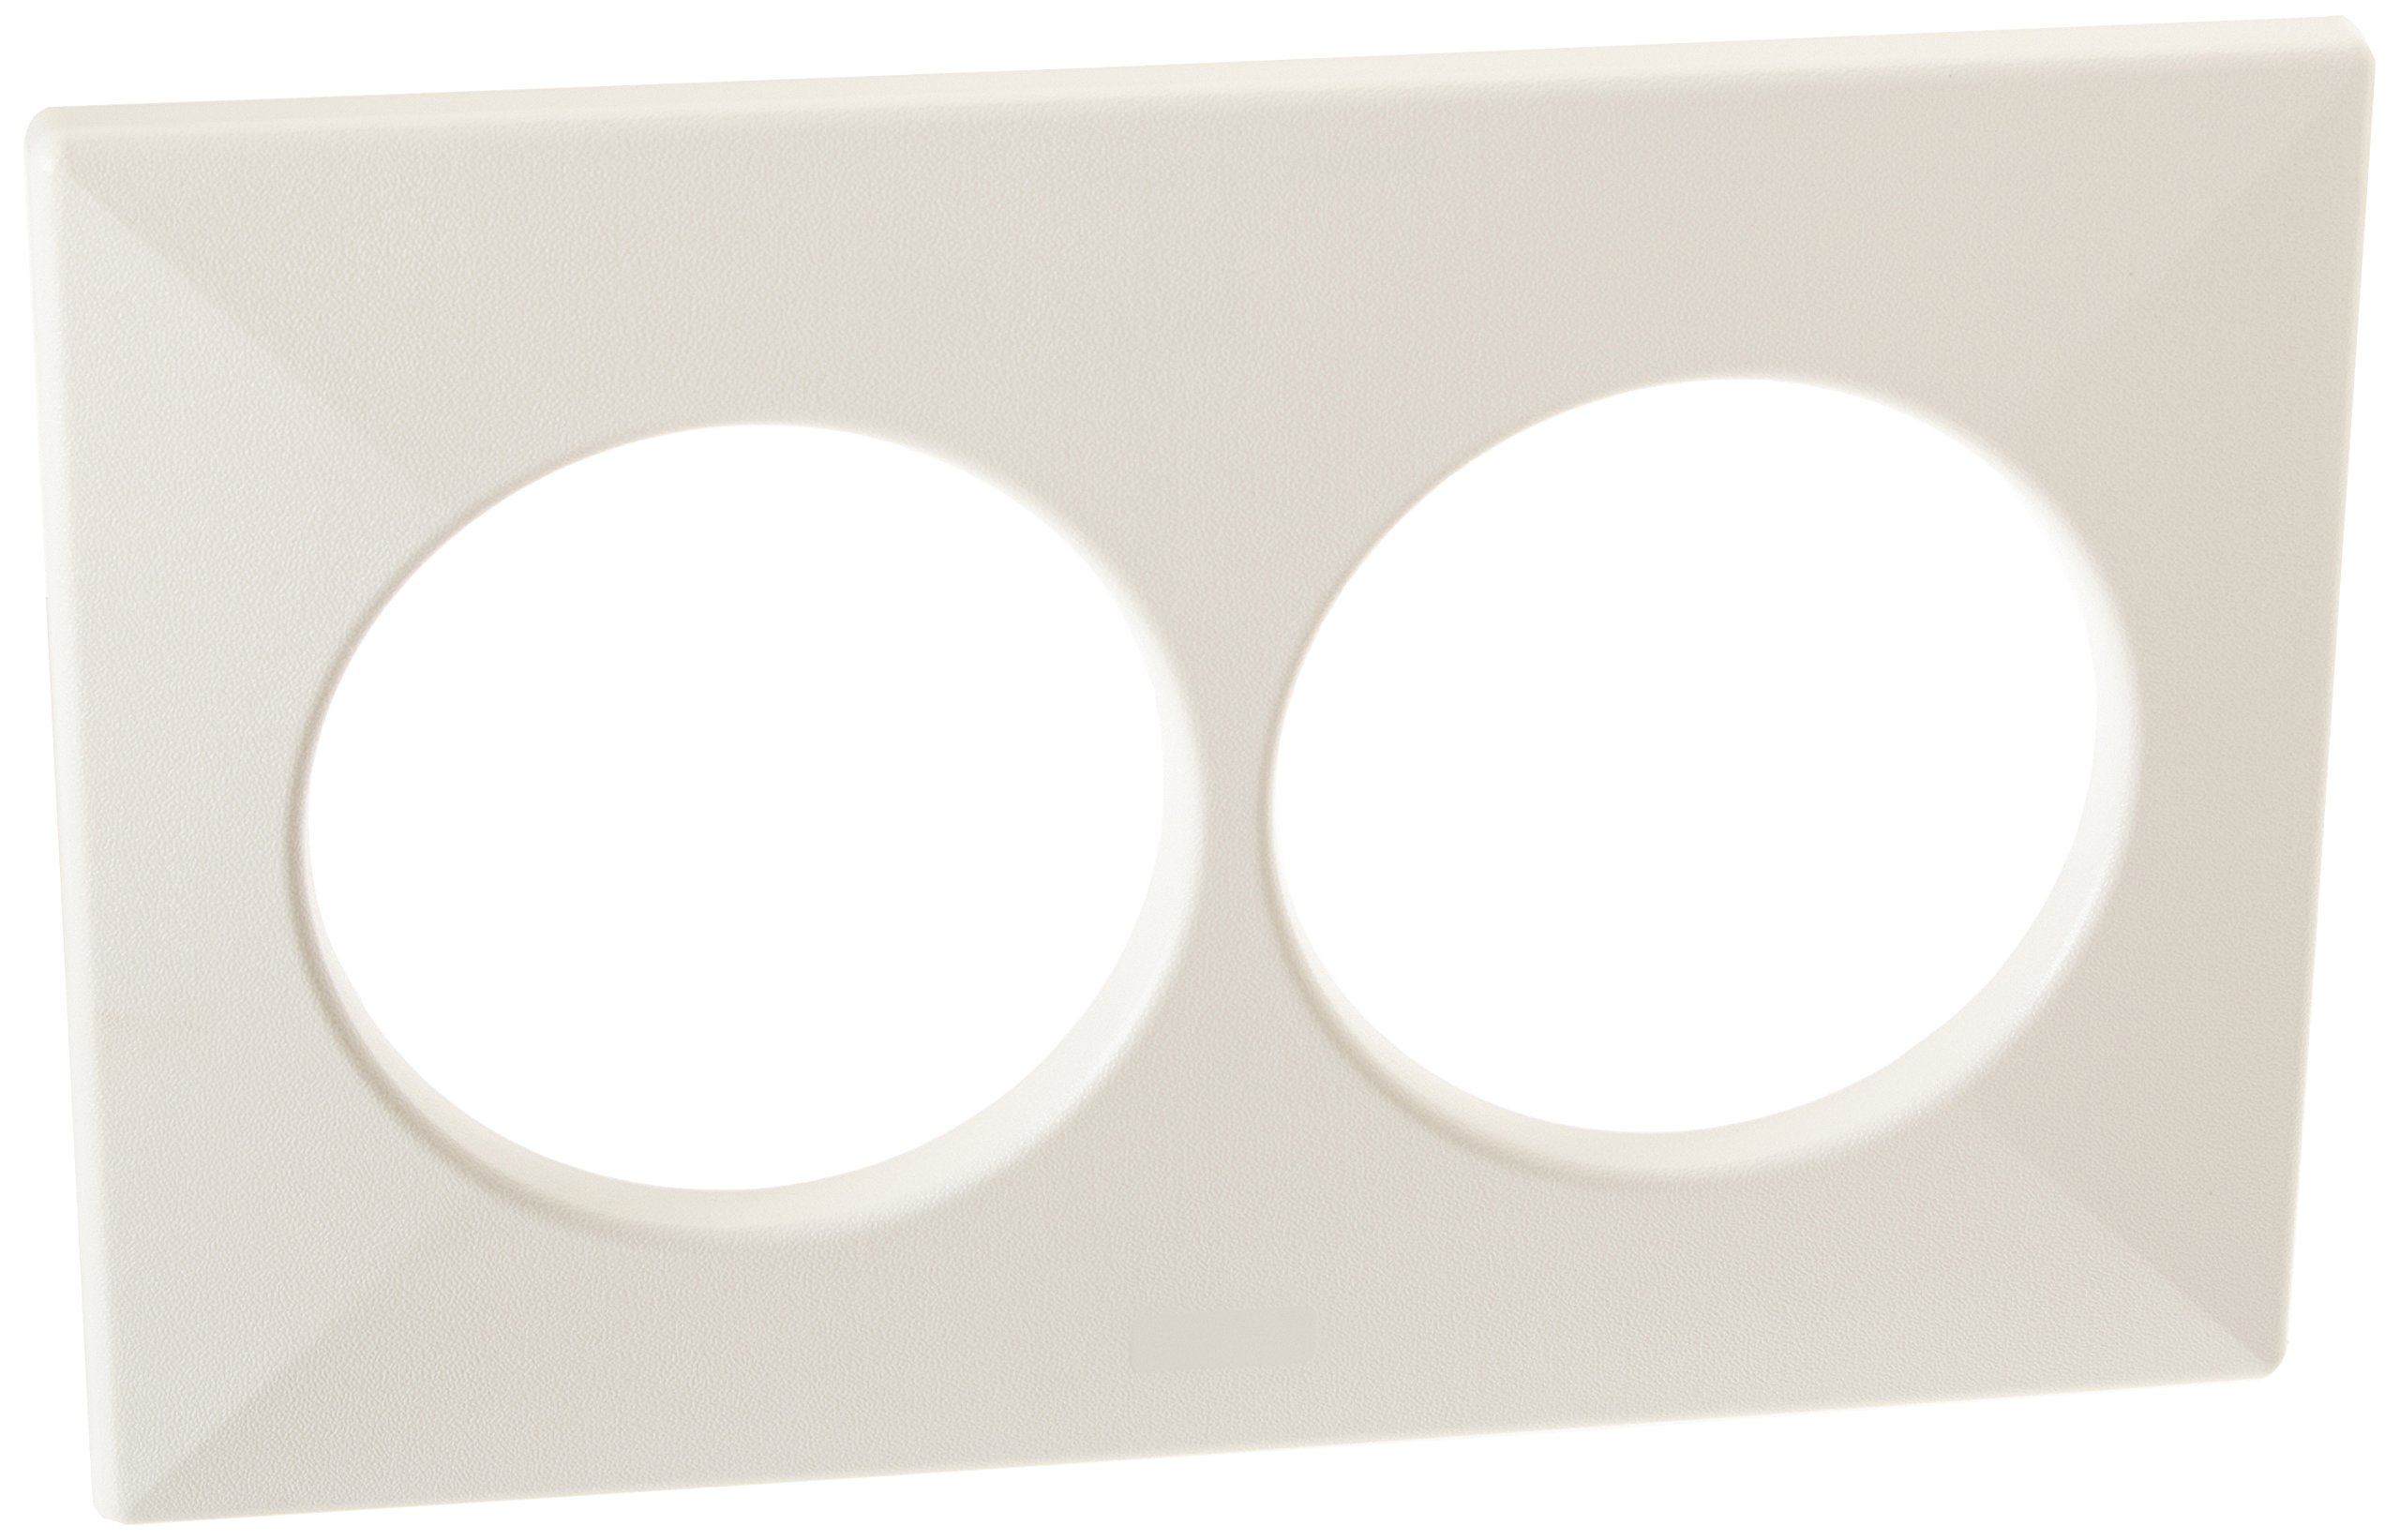 Broan S97010320 Bathroom Heater Cover Grille Assembly ...